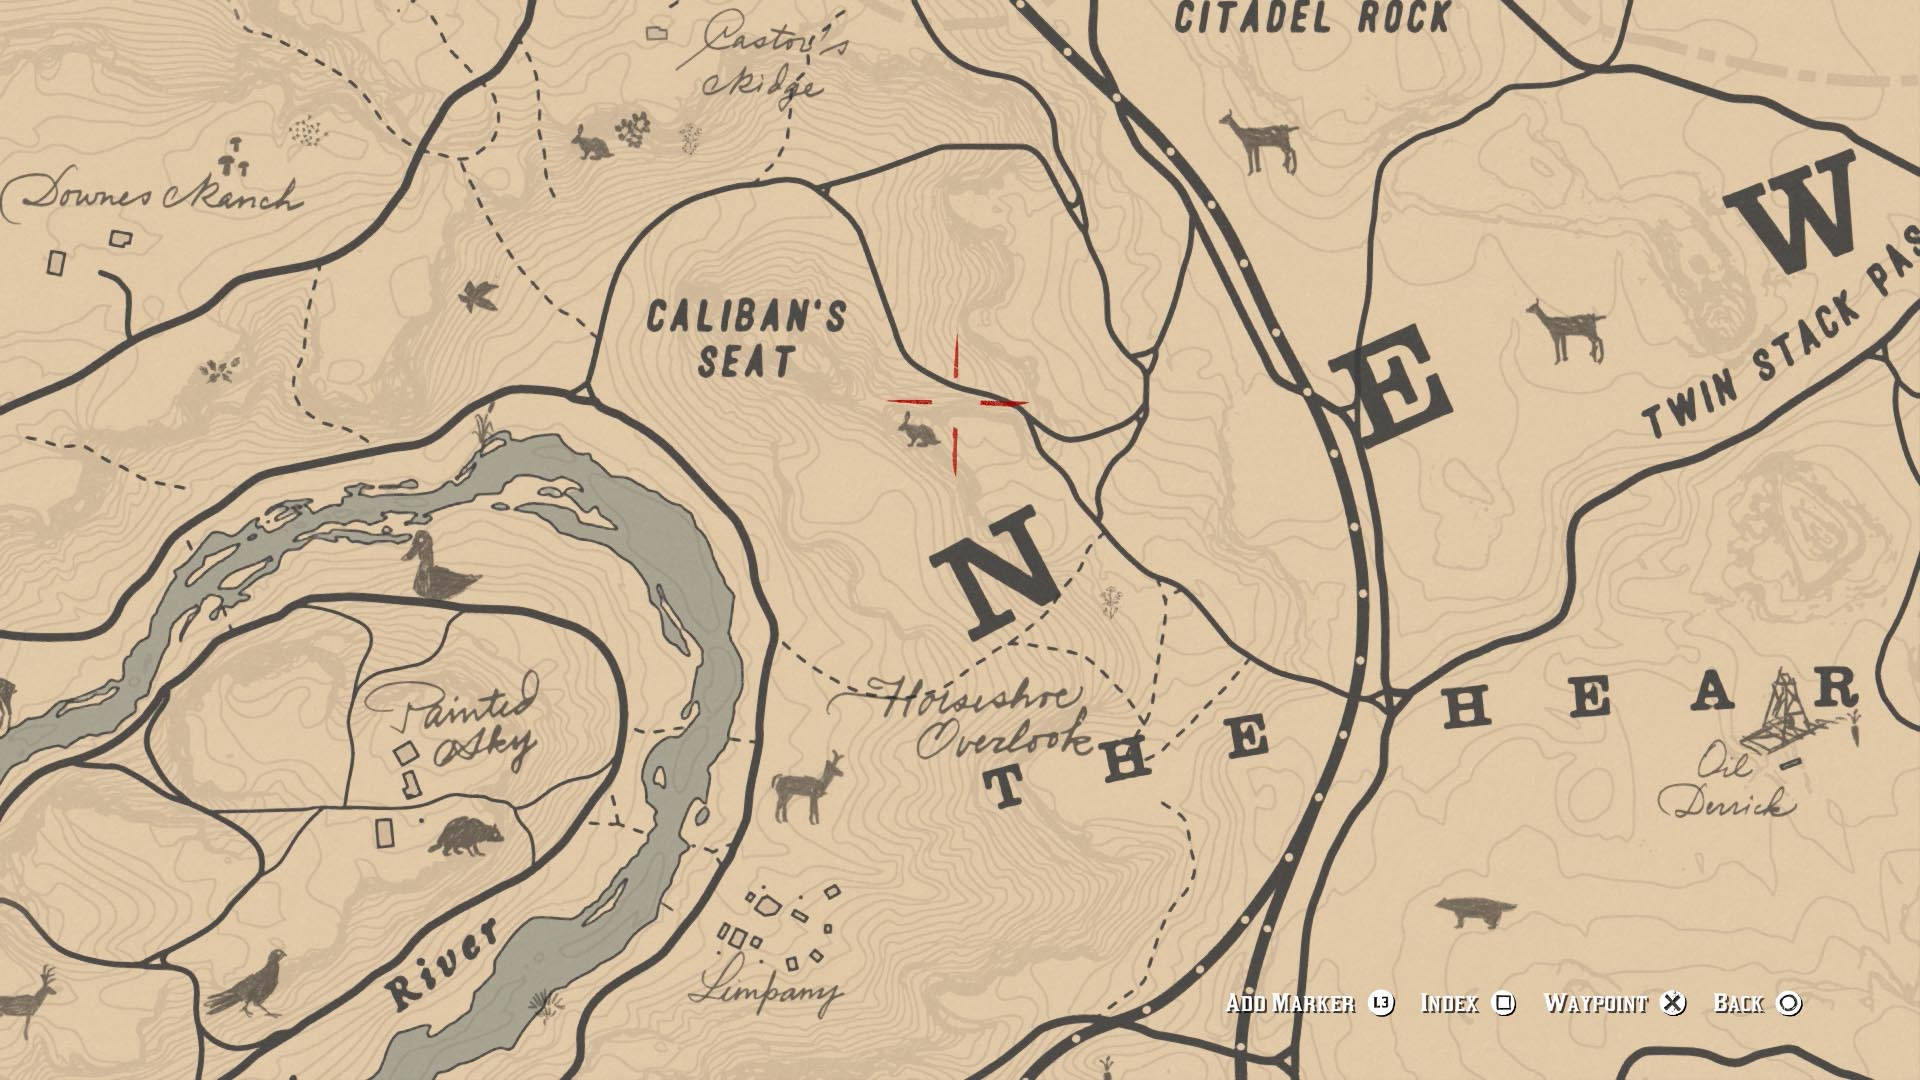 Red Dead Redemption 2 World Map.Red Dead Redemption 2 S Companion App Improves The Entire Game Polygon